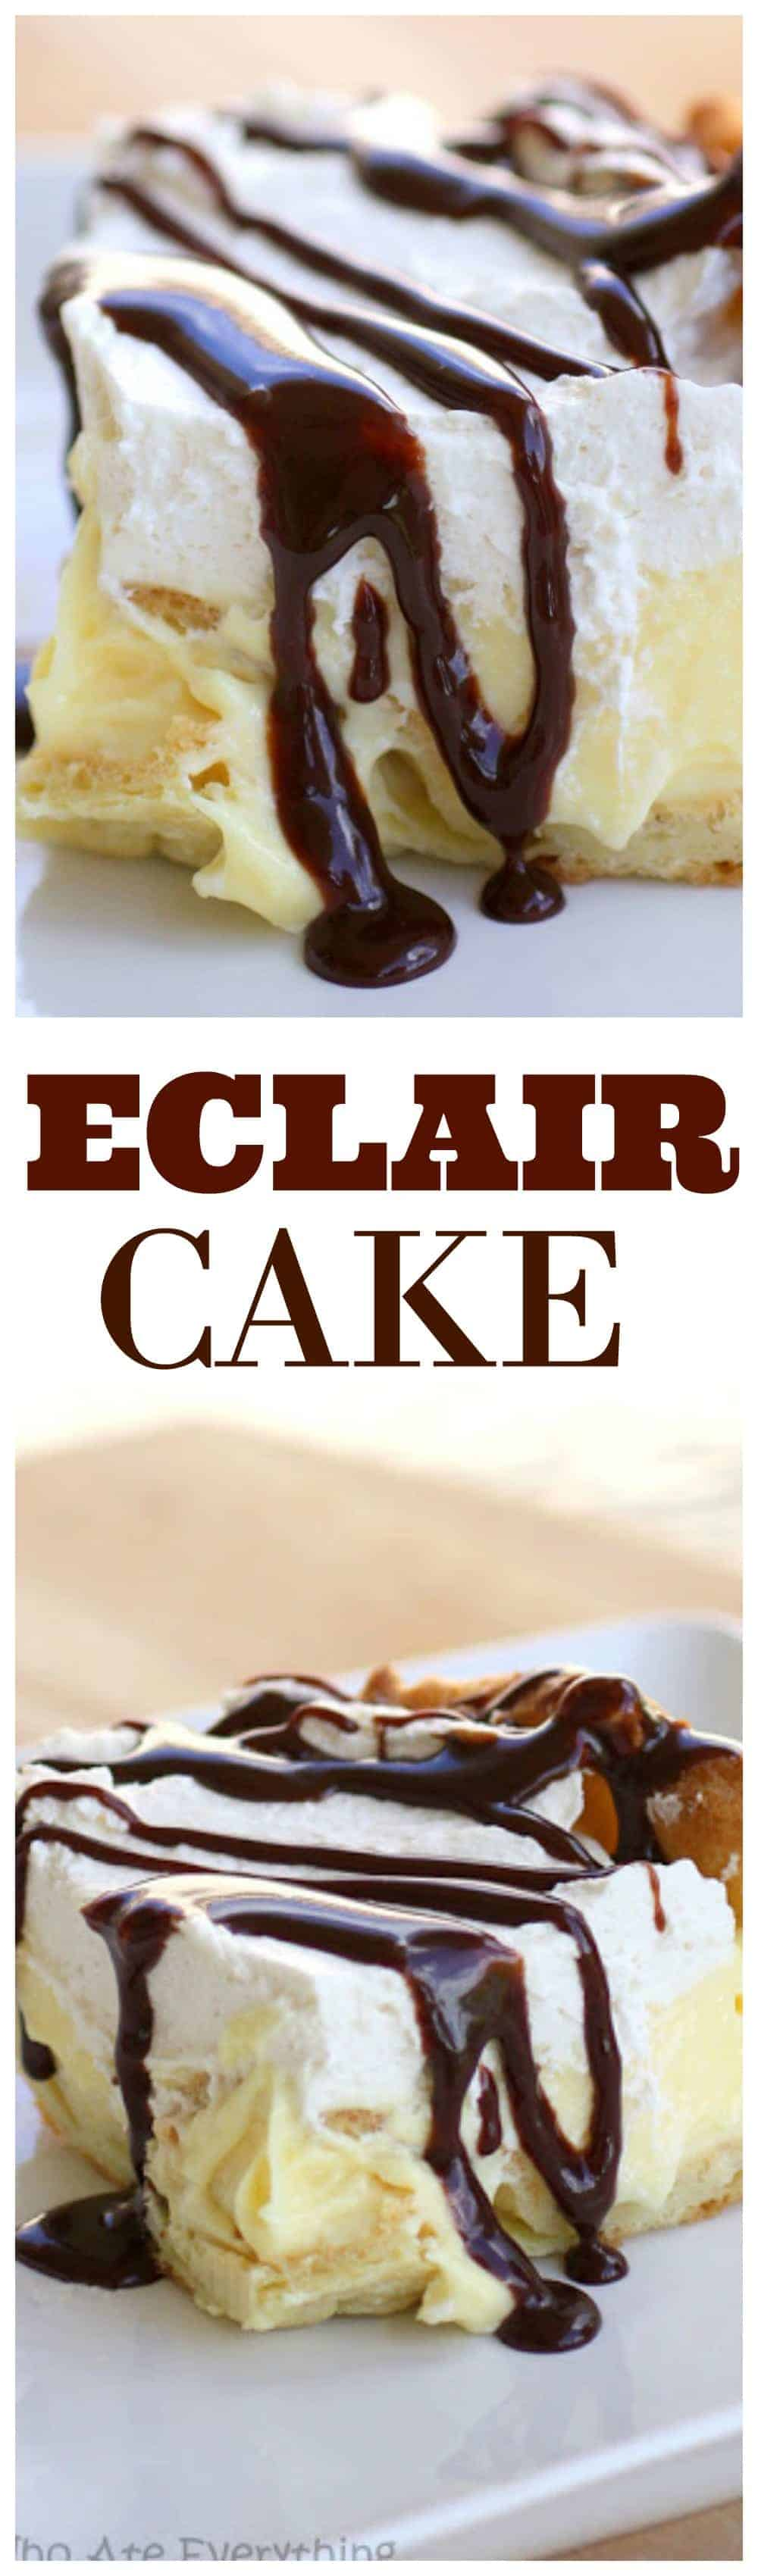 This Eclair Cake has a cream puff crust, vanilla cream cheese layer, whipped cream, and a chocolate drizzle. It's all the flavors of an eclair in cake form. #chocolate #eclair #cake #recipe #dessert